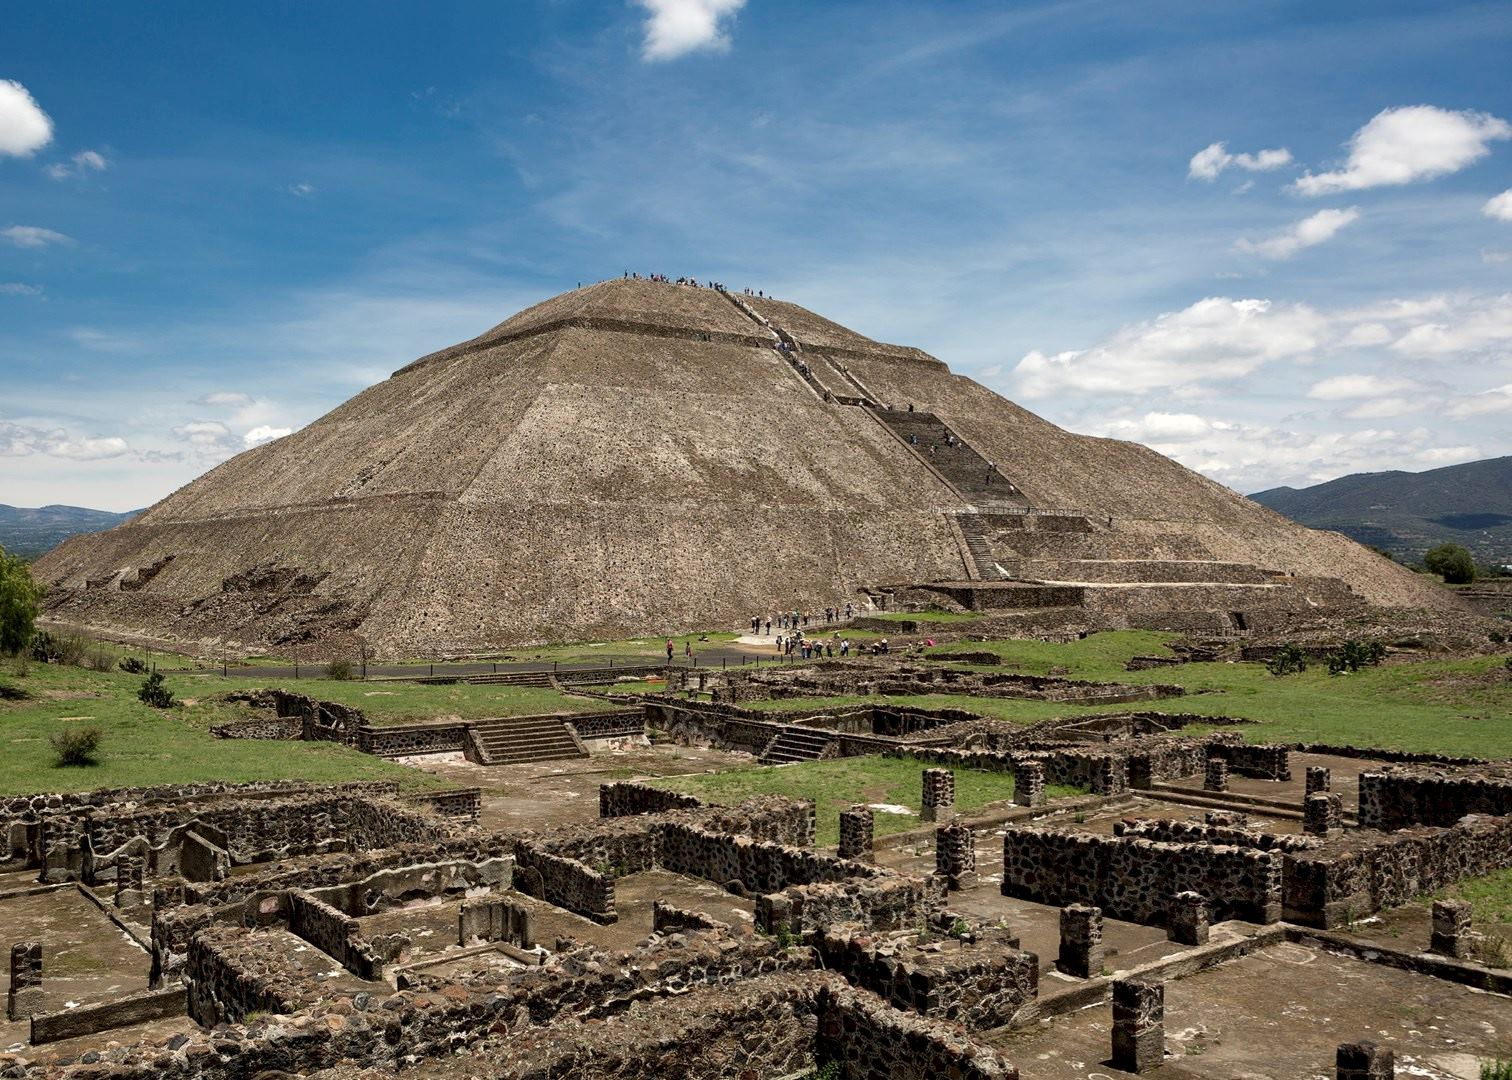 Hotels Near Teotihuacan Pyramids